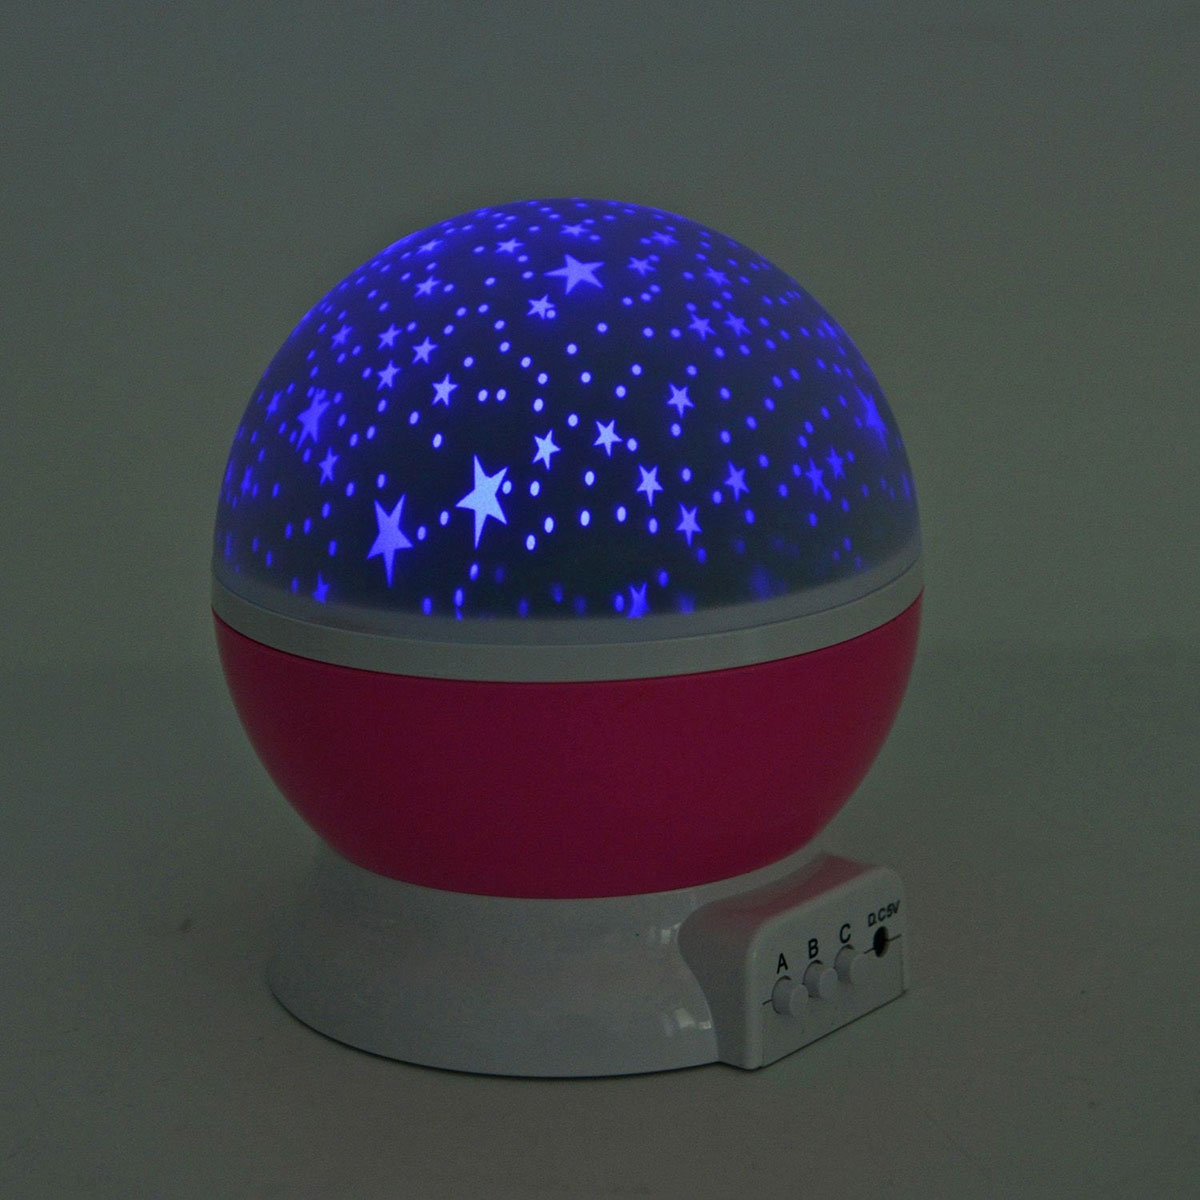 Pink Star Master Dream Rotating Projection Lamp Lighting